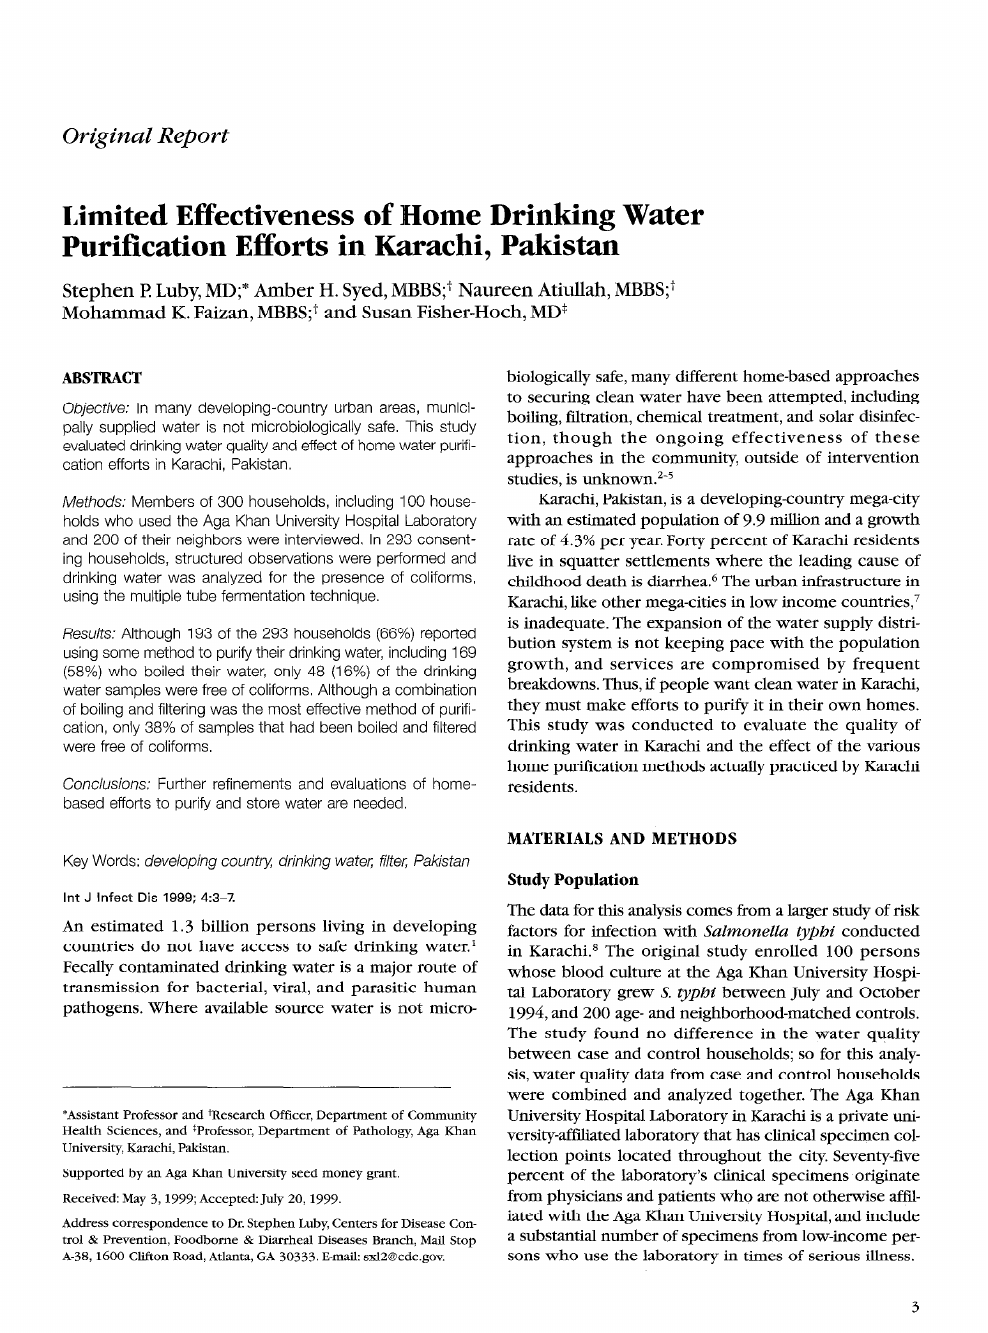 Limited effectiveness of home drinking water purification efforts in